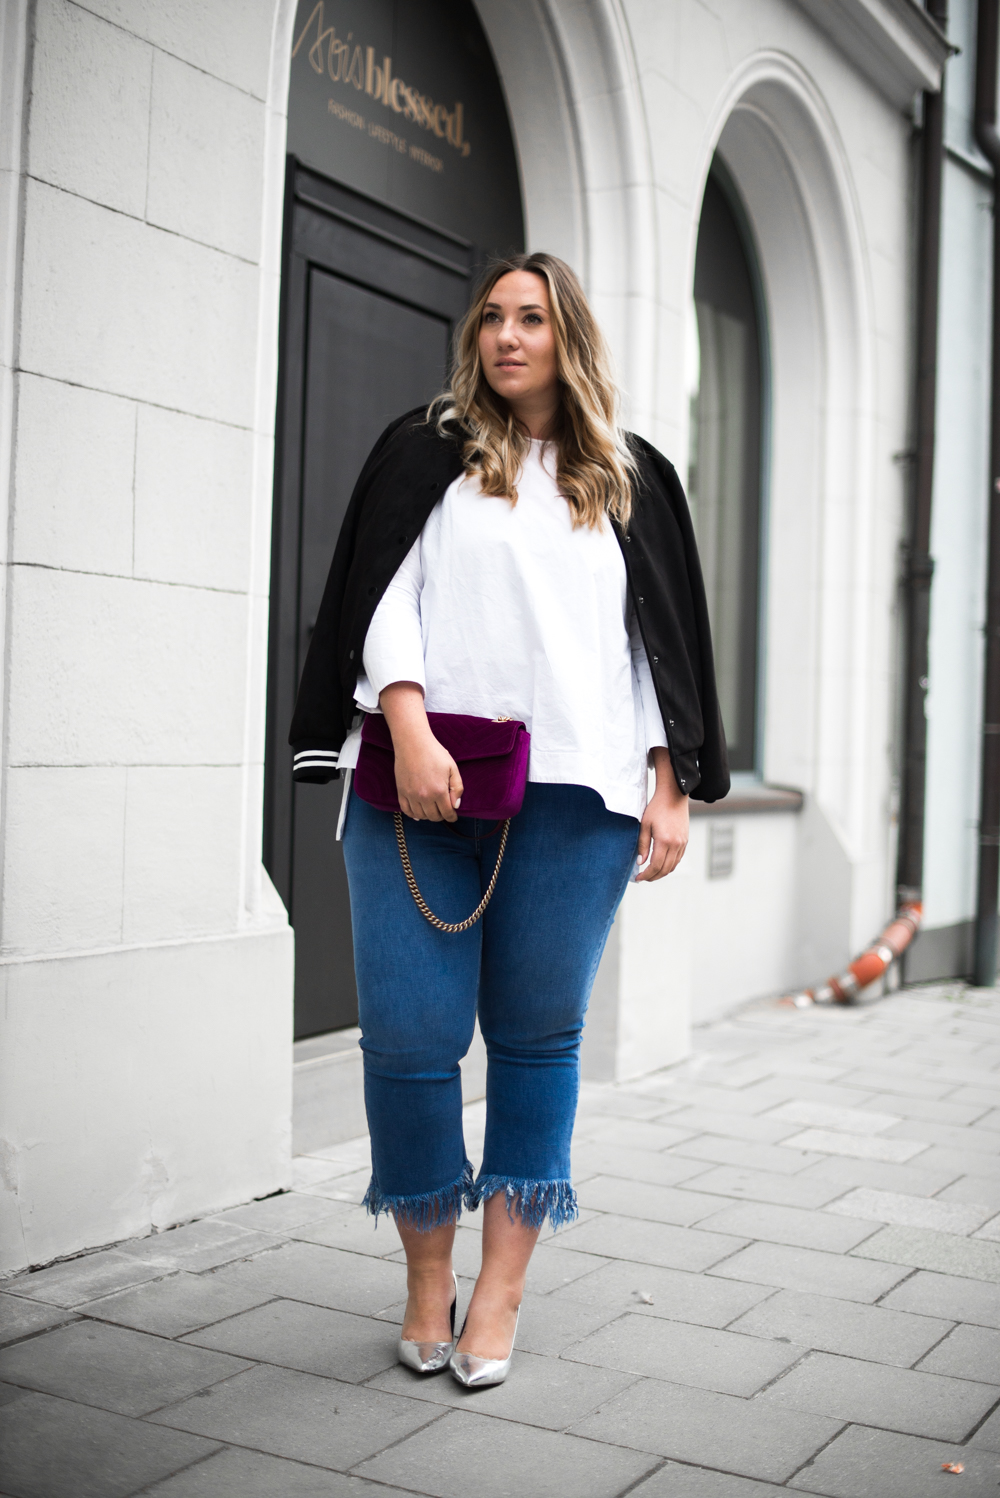 Gucci_The Skinny and the Curvy One_Ms wunderbar_Plus Size Blogger_curve blog_Fashionblog Deutschland_Plus Size Fashion Deutschland_College Jacke_Fringe Jeans (4 von 15)